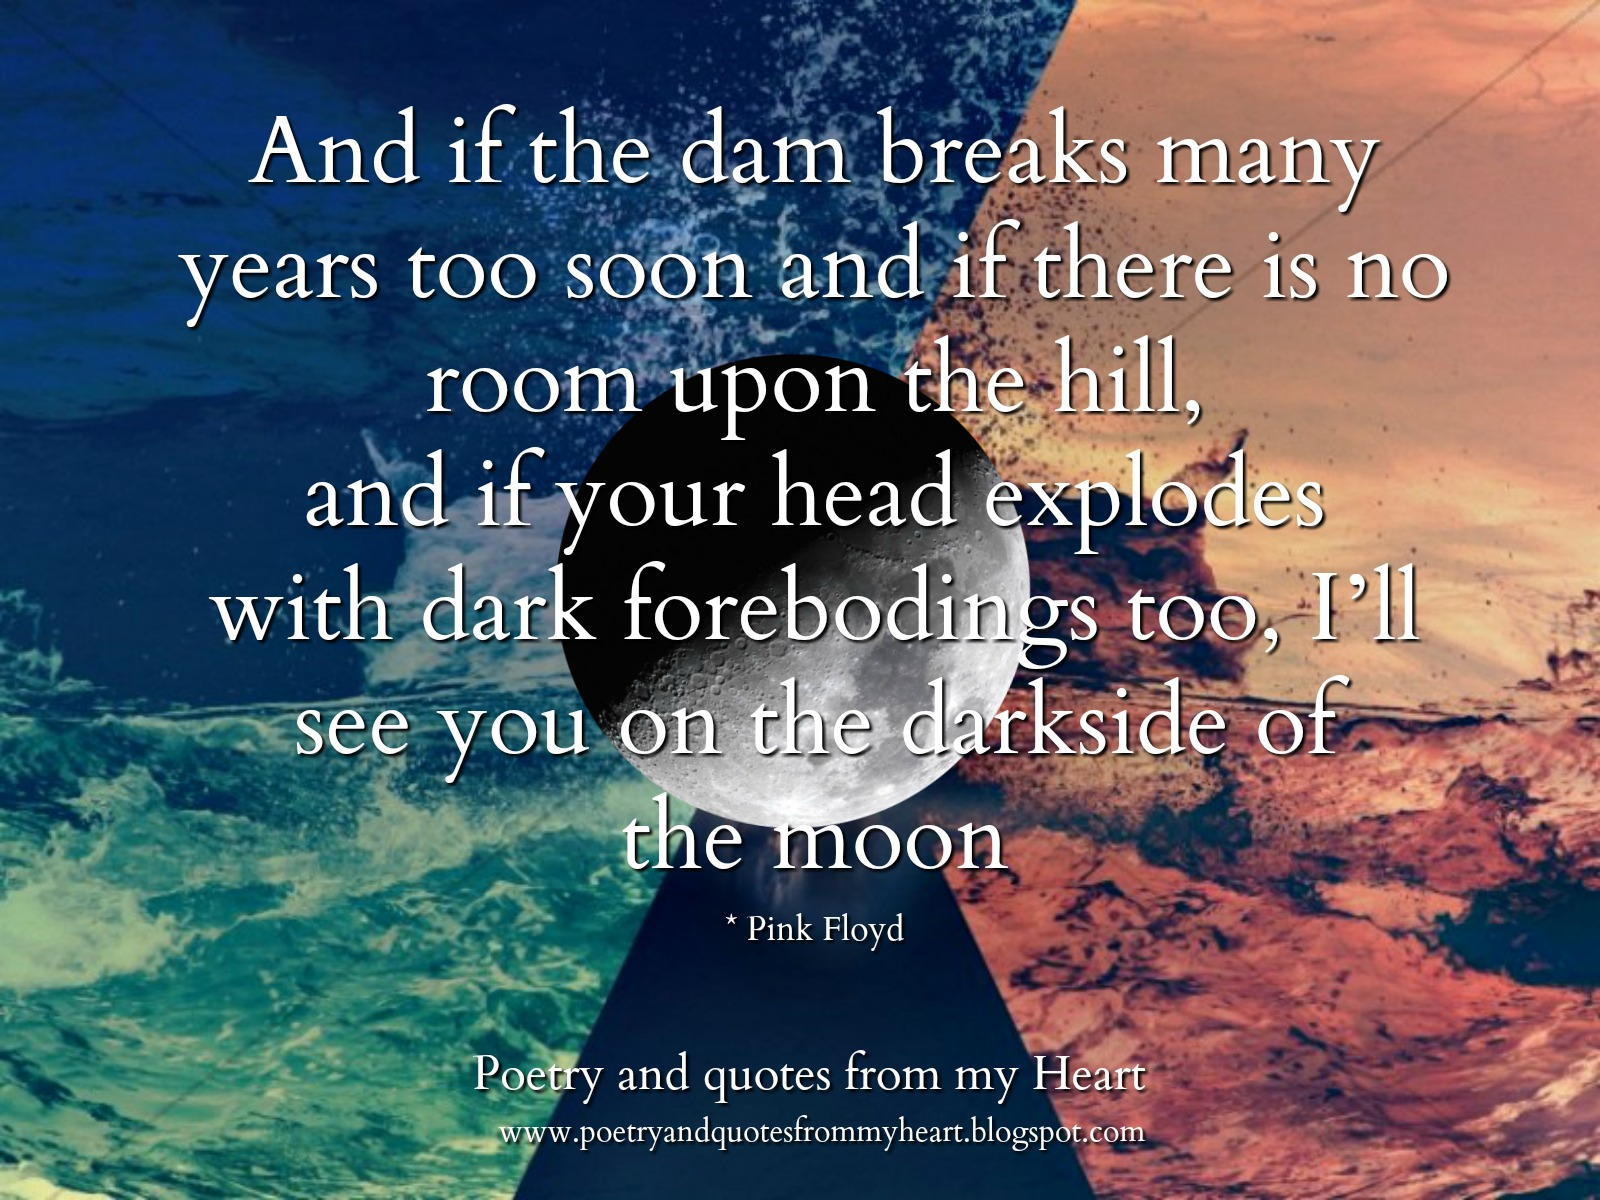 Poetry And Quotes From My Heart And If The Dam Breaks Many Years